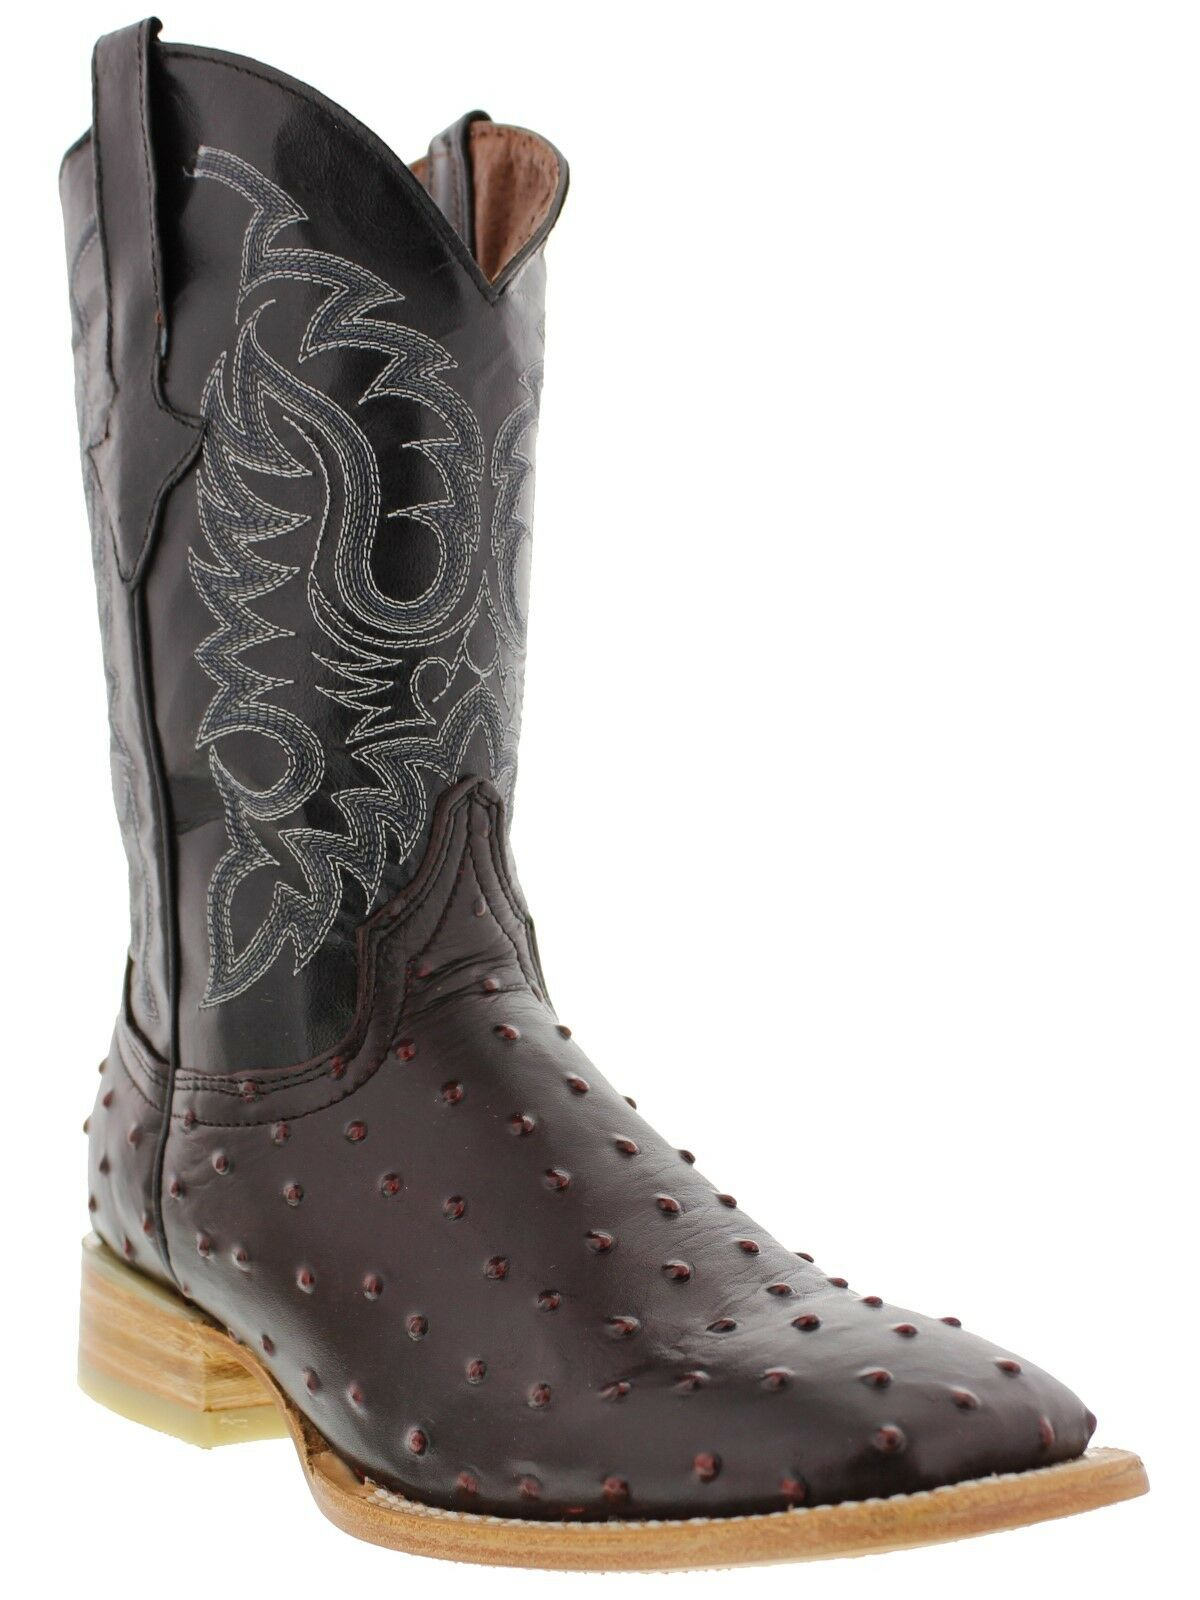 Men's Cowboy Boots Ostrich Quill Dark Red Leather Western Wear Rodeo Square Toe